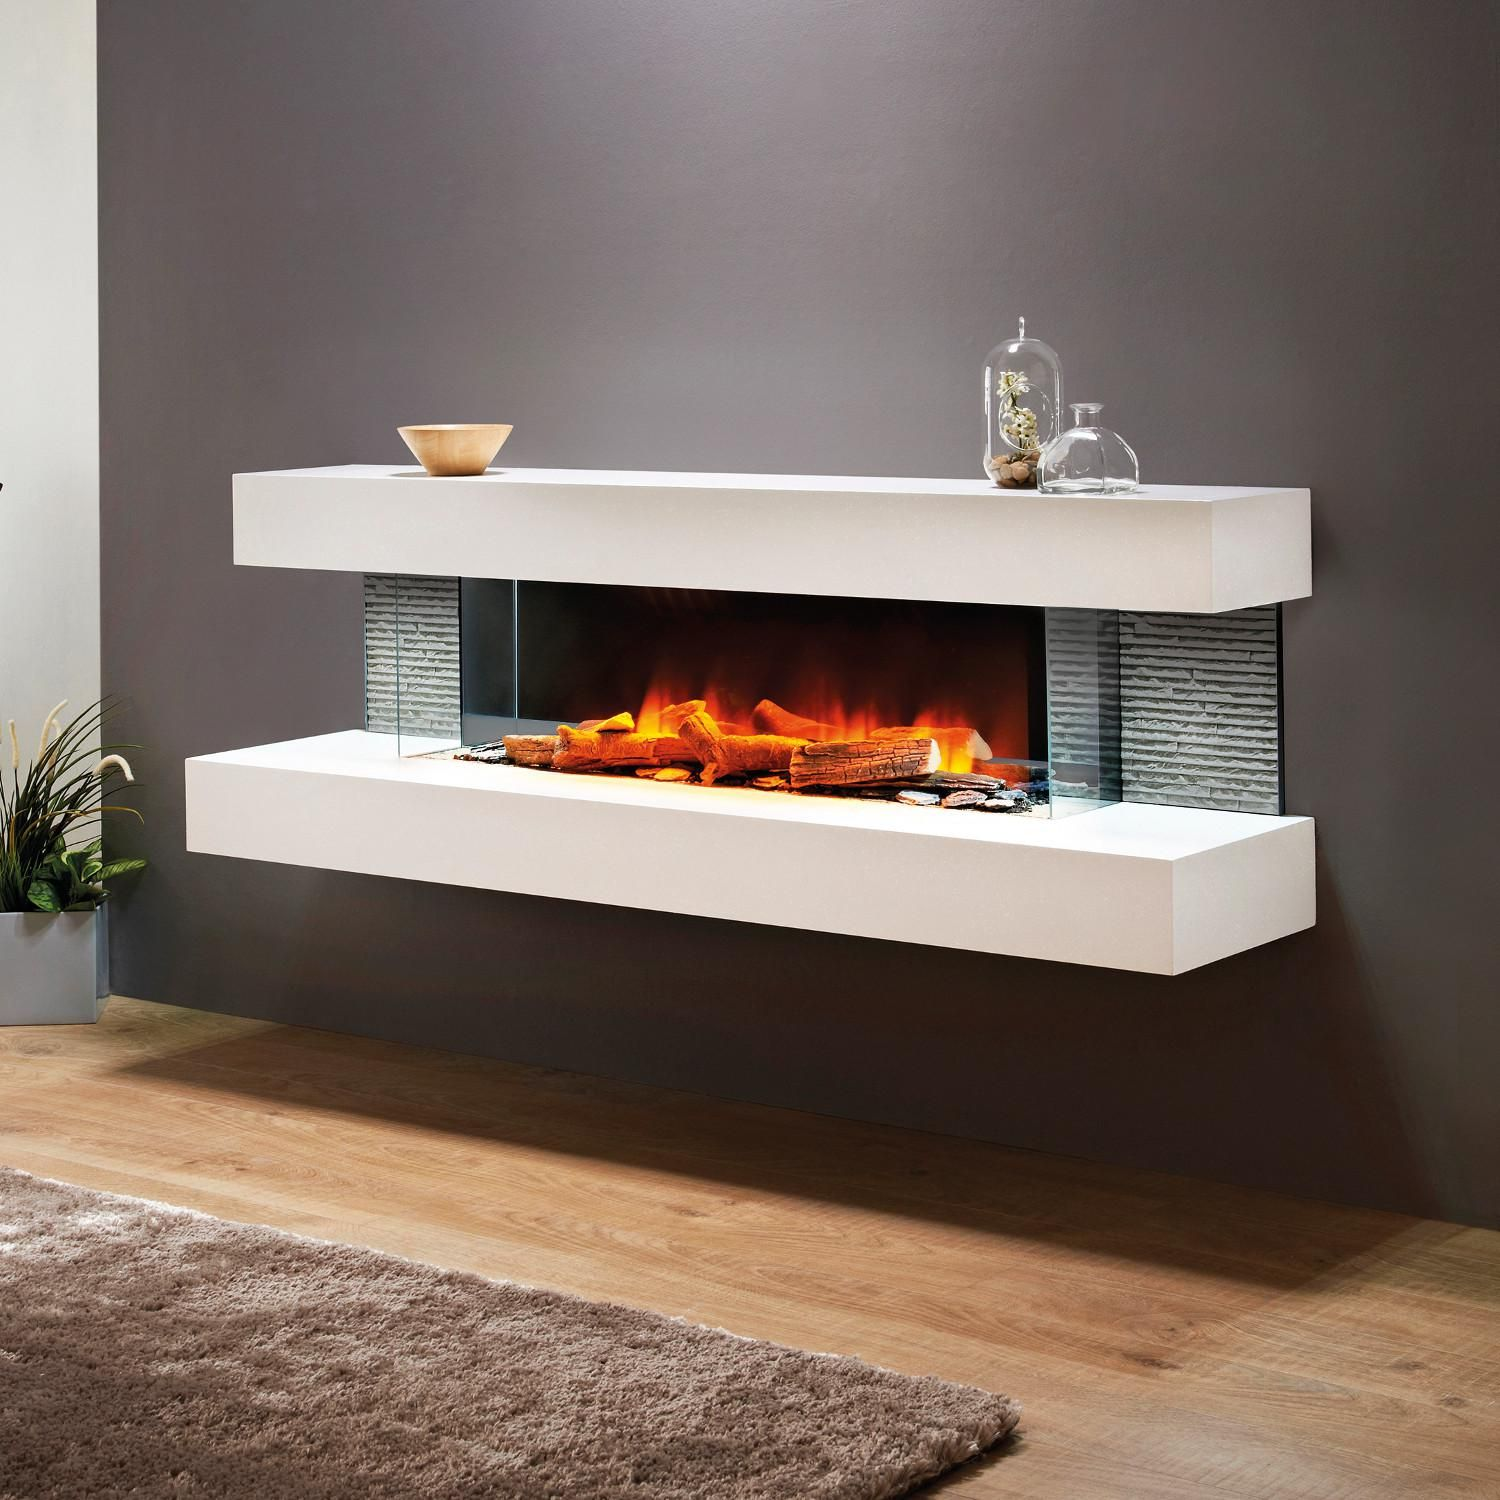 Evolution Fires Efv72w Vegas 72 Inch Wall Mount Electric Fireplace White Bbqguys Wall Mount Electric Fireplace Wall Mounted Electric Fires Electric Fireplace Wall